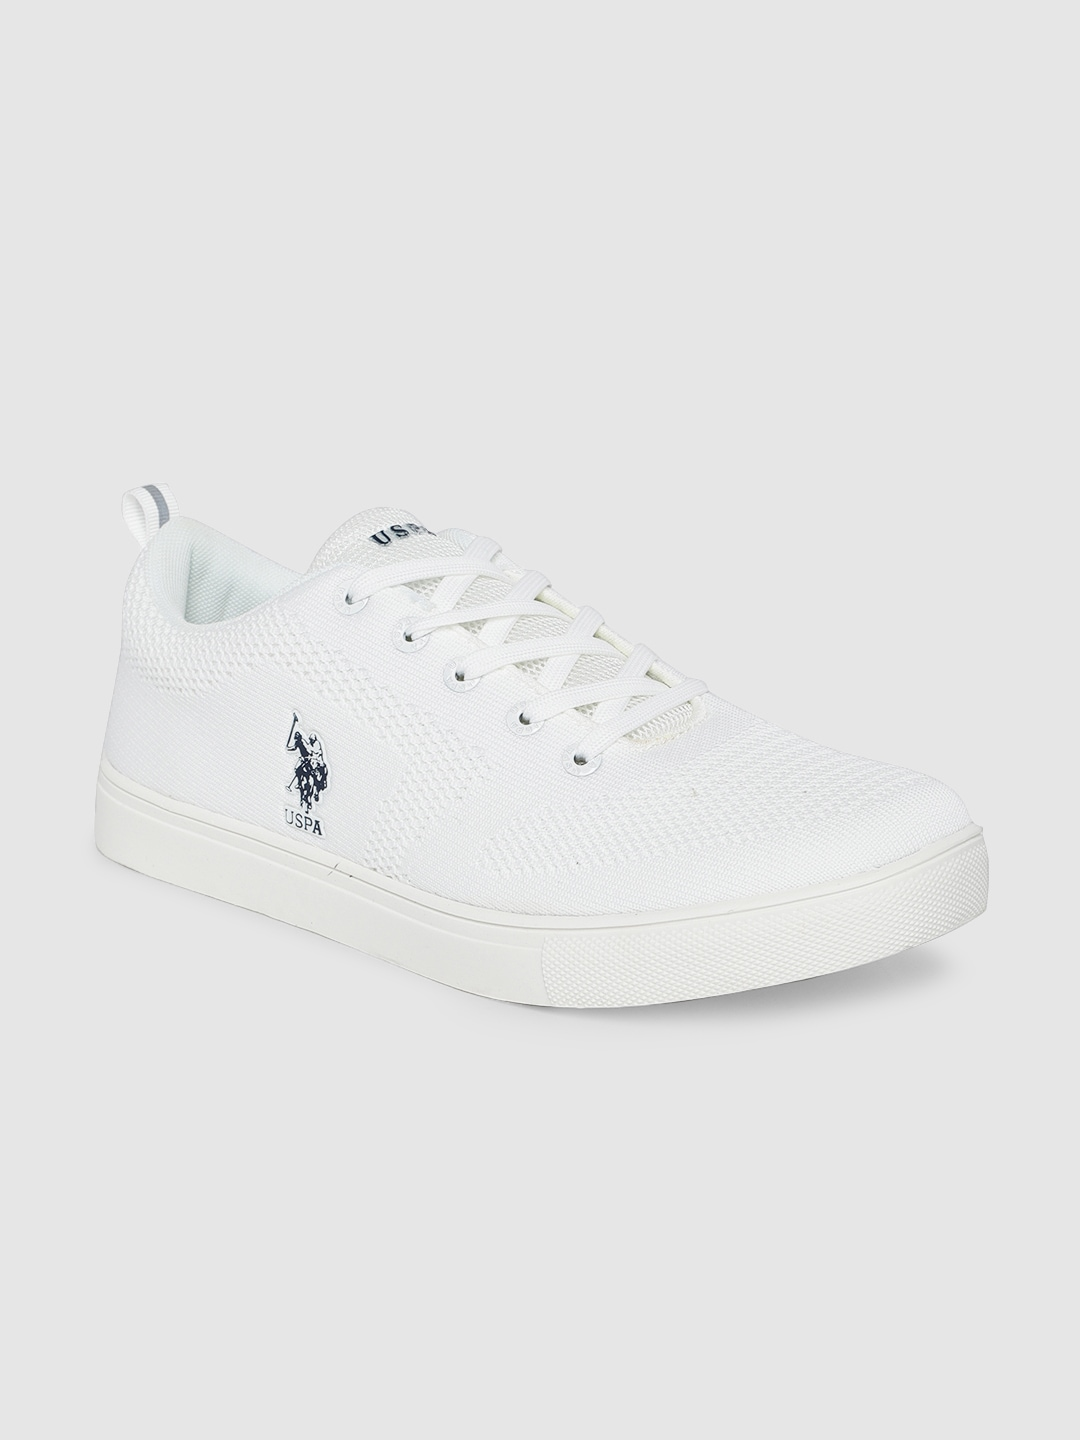 U.S. Polo Assn. Men Off-White Sneakers